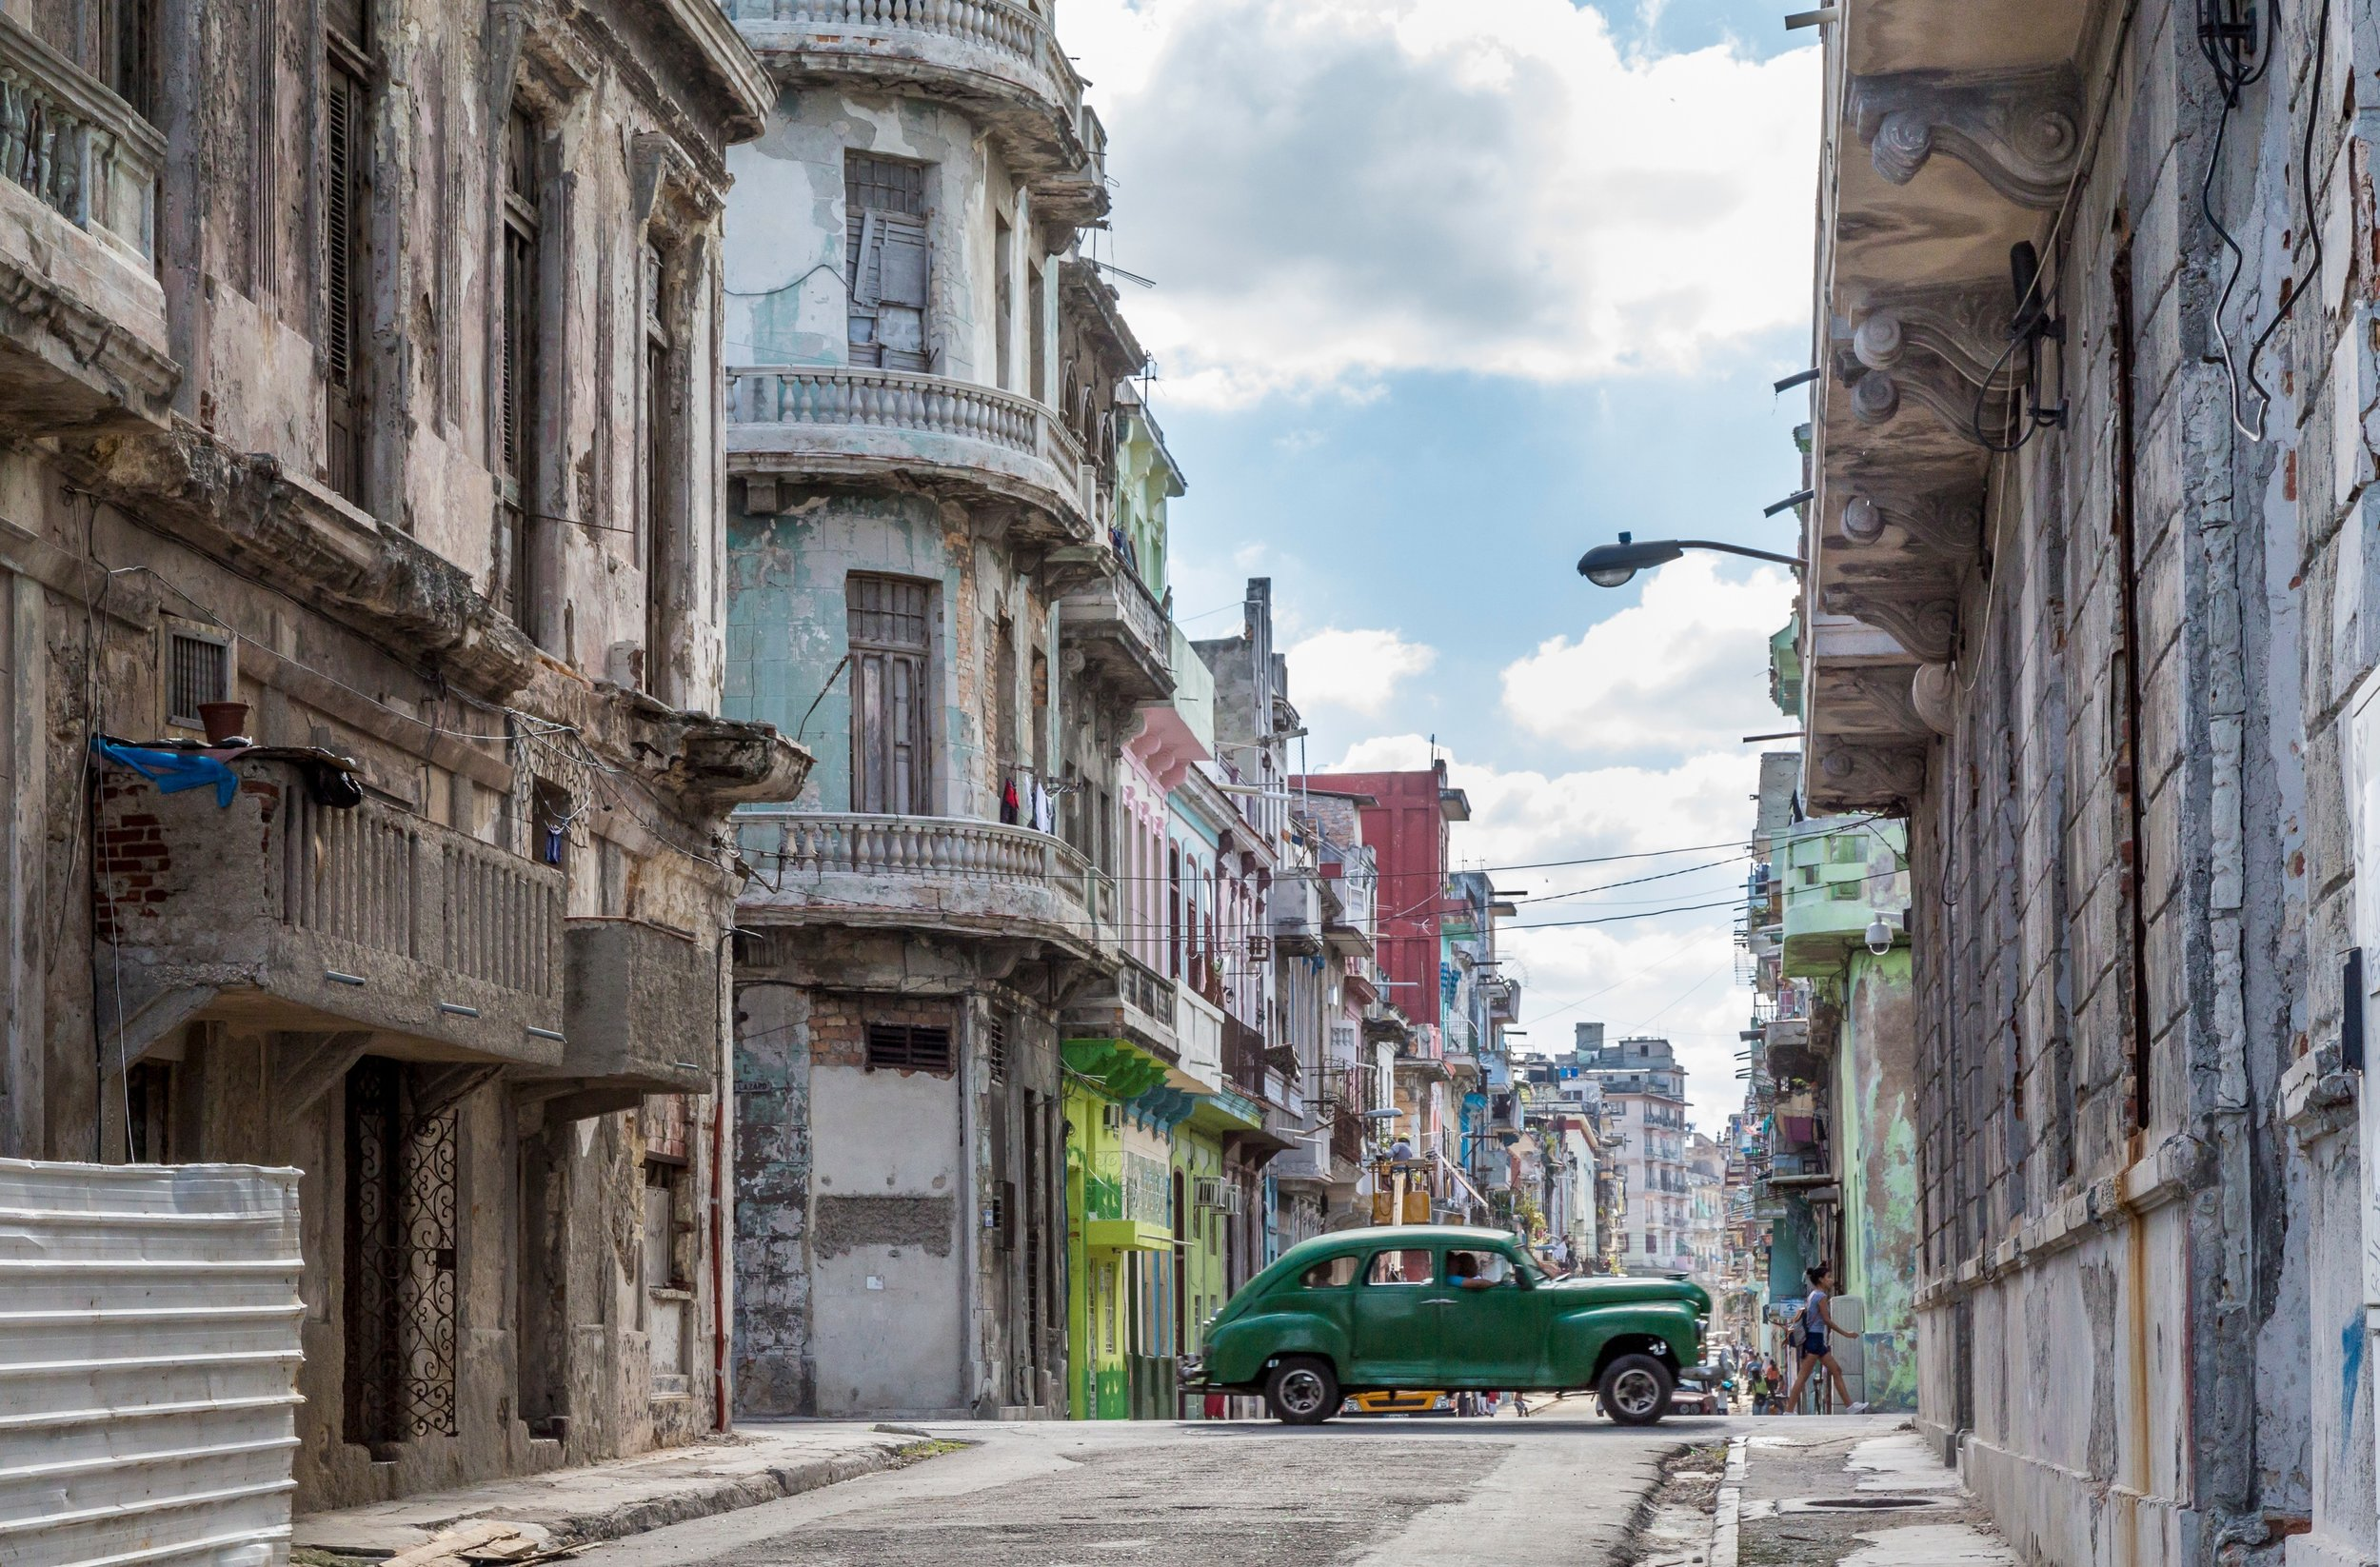 A Return To Cuba - Ramos Y Sanchez returns to his native Cuba after 52 years away with hope and apprehension.